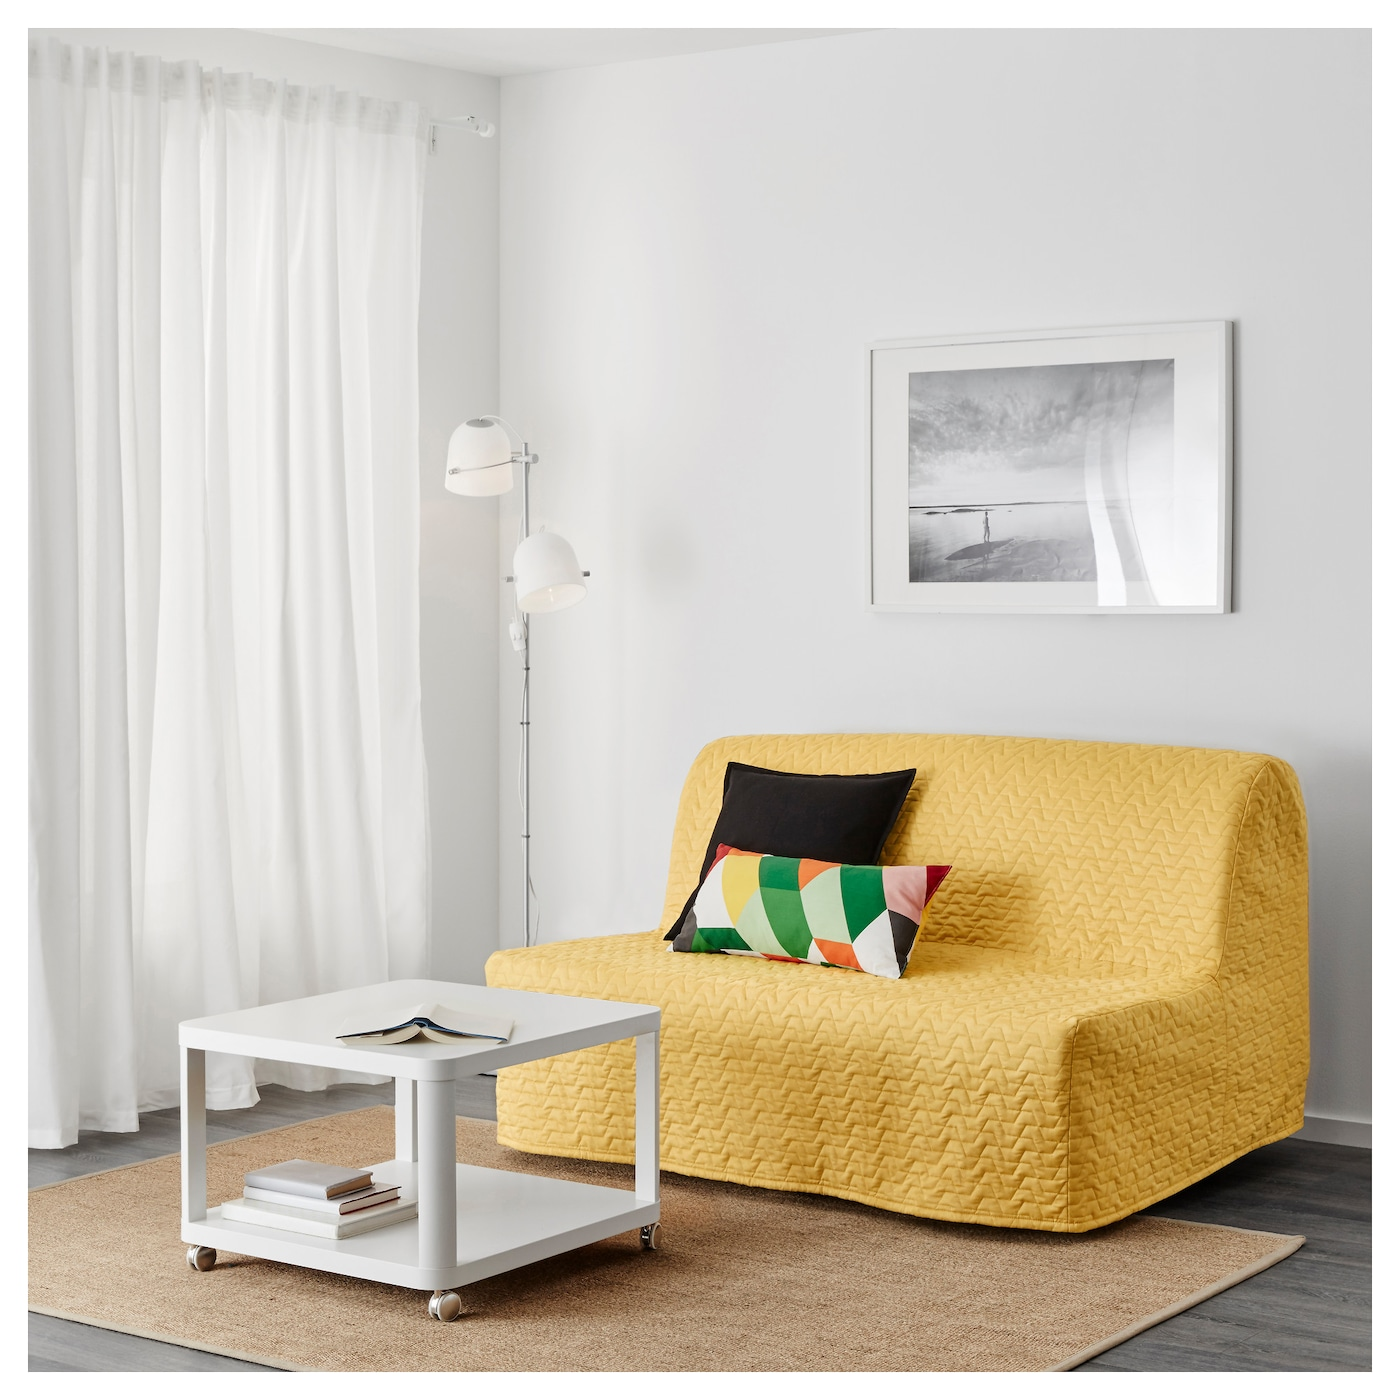 Ikea Lycksele HÅvet Two Seat Sofa Bed Readily Converts Into A Enough